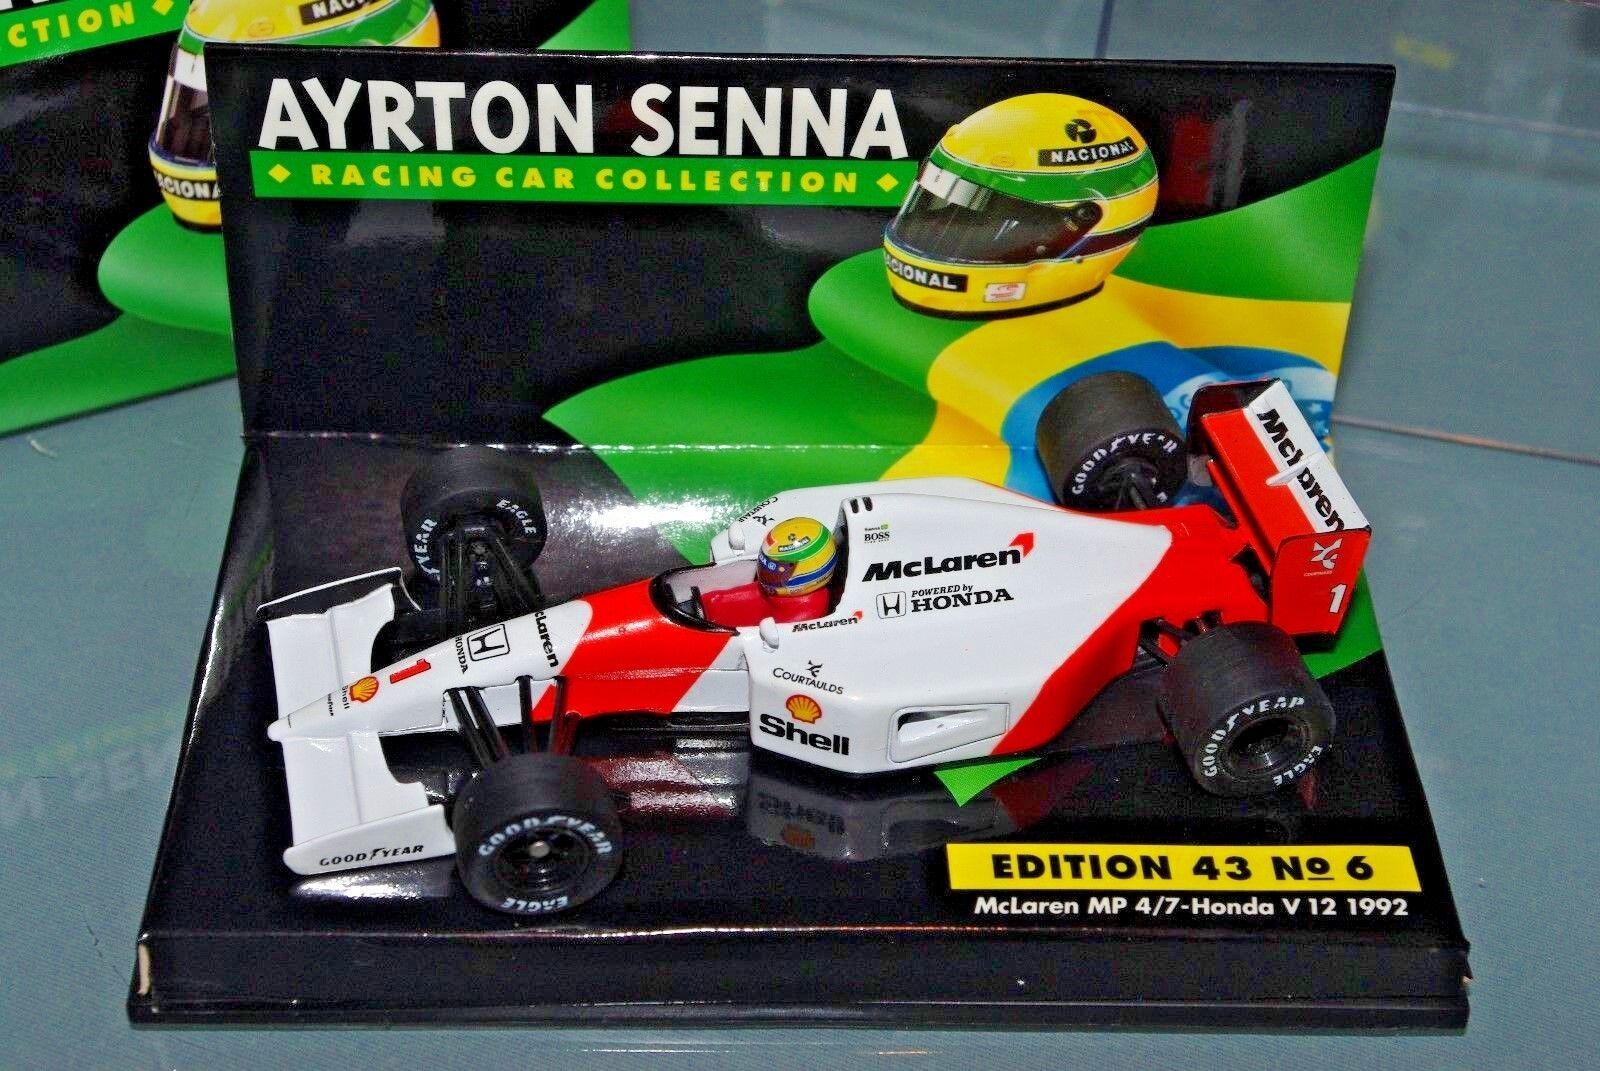 Minichamps F1 1 43 McLAREN MP4 7 HONDA V12 1992 - AYRTON SENNA COLLECTION